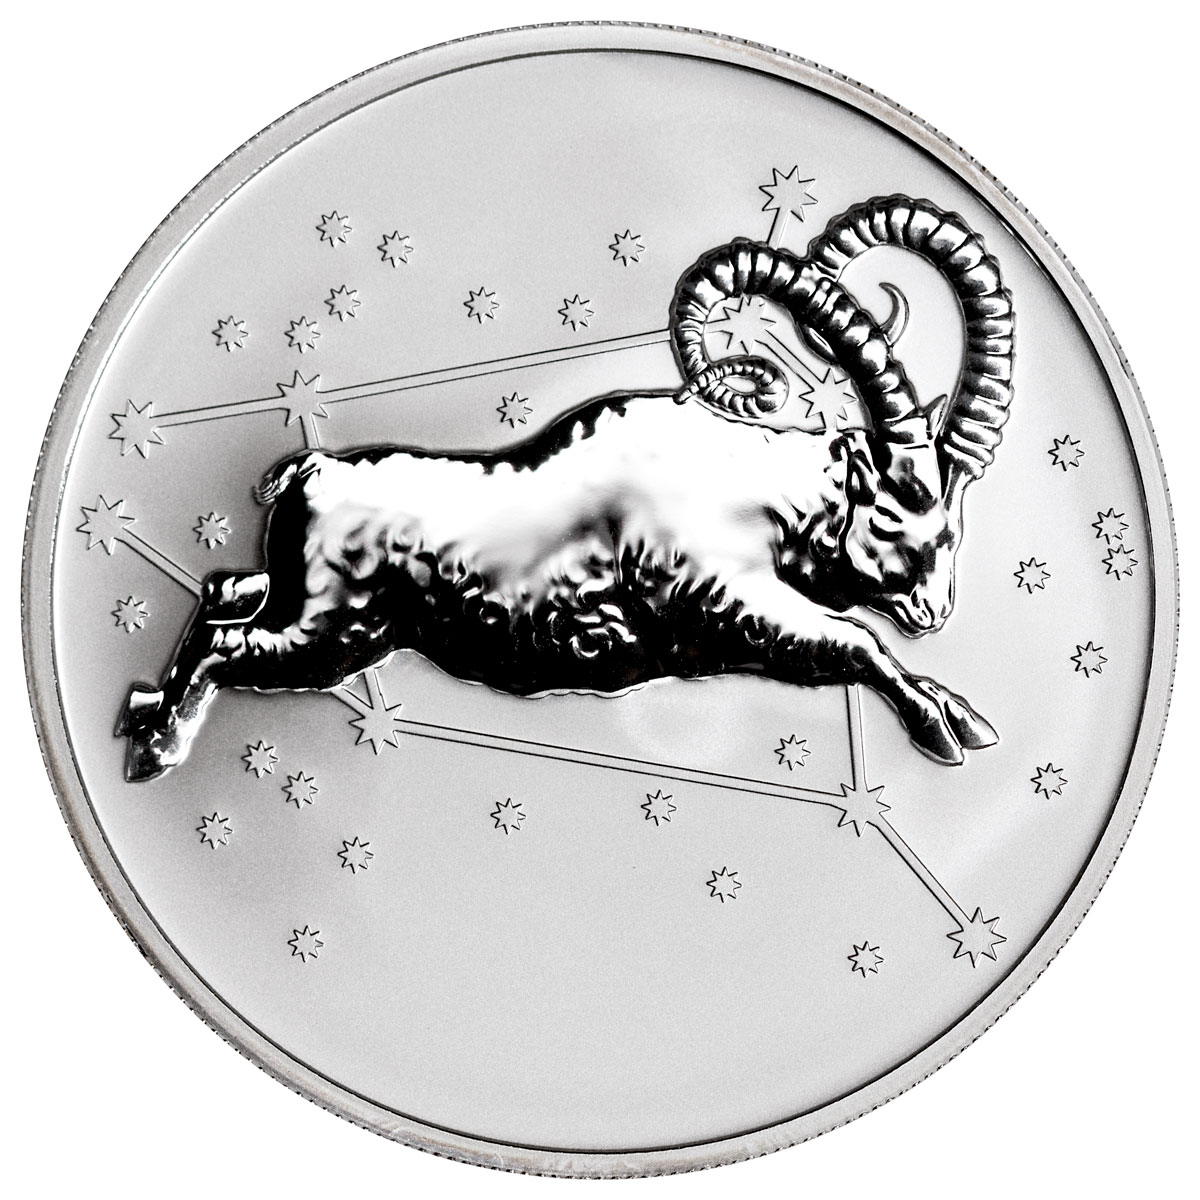 2015 Tokelau Creatures of Myth and Legend - Aries 1 oz Silver Reverse Proof $5 Coin (GEM Reverse Proof - Original Mint Capsule)